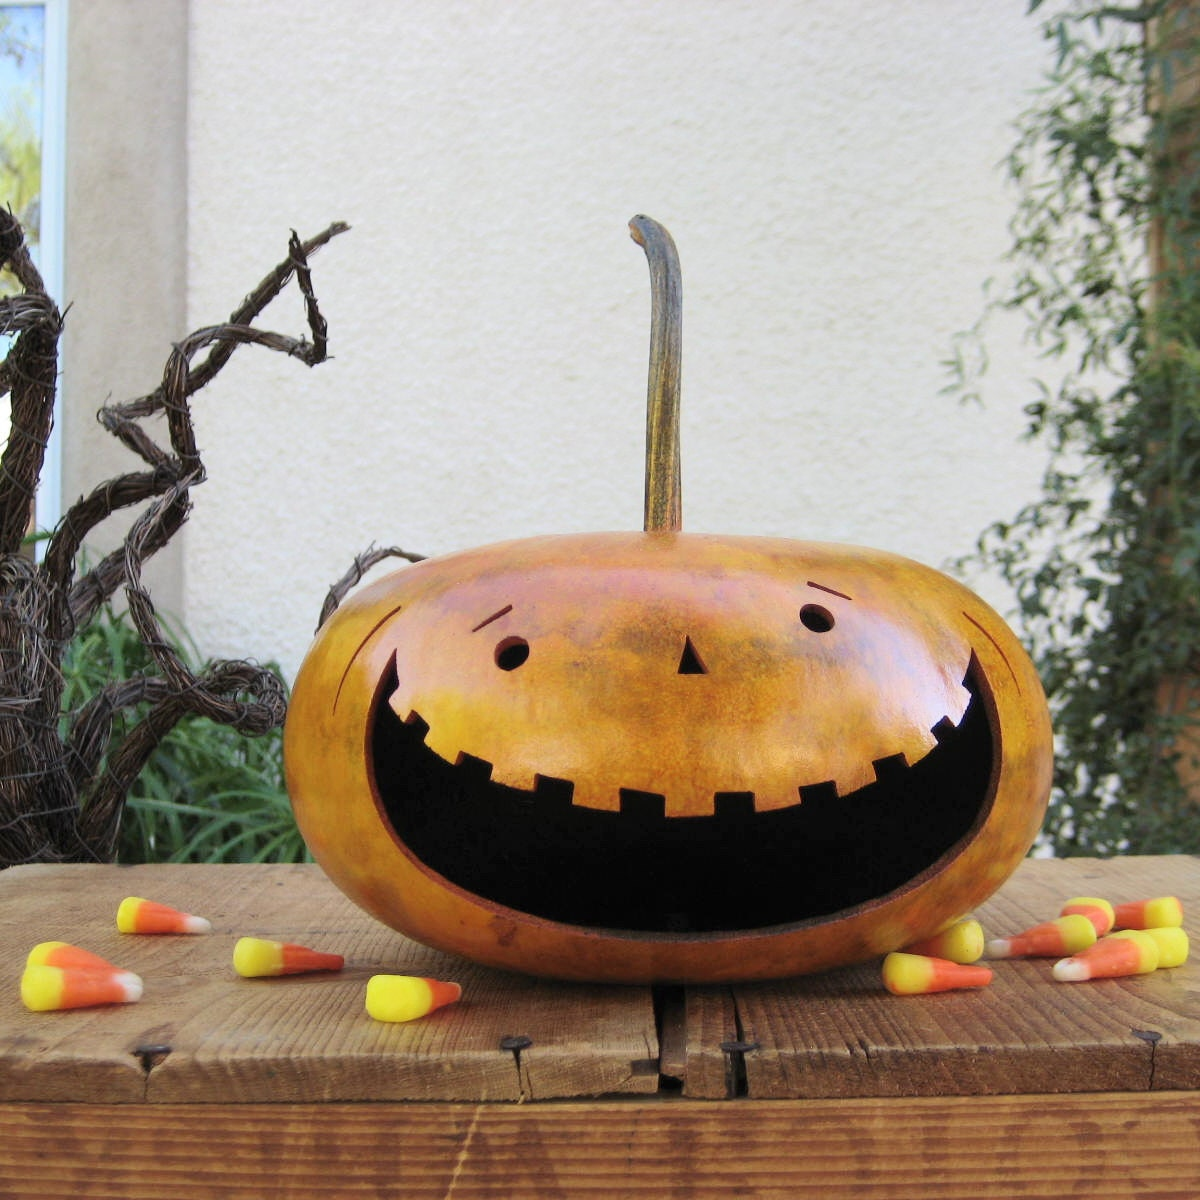 Natural Halloween Decorations: Halloween Gourd Jack O Lantern Natural Fall By Pinchmeboutique